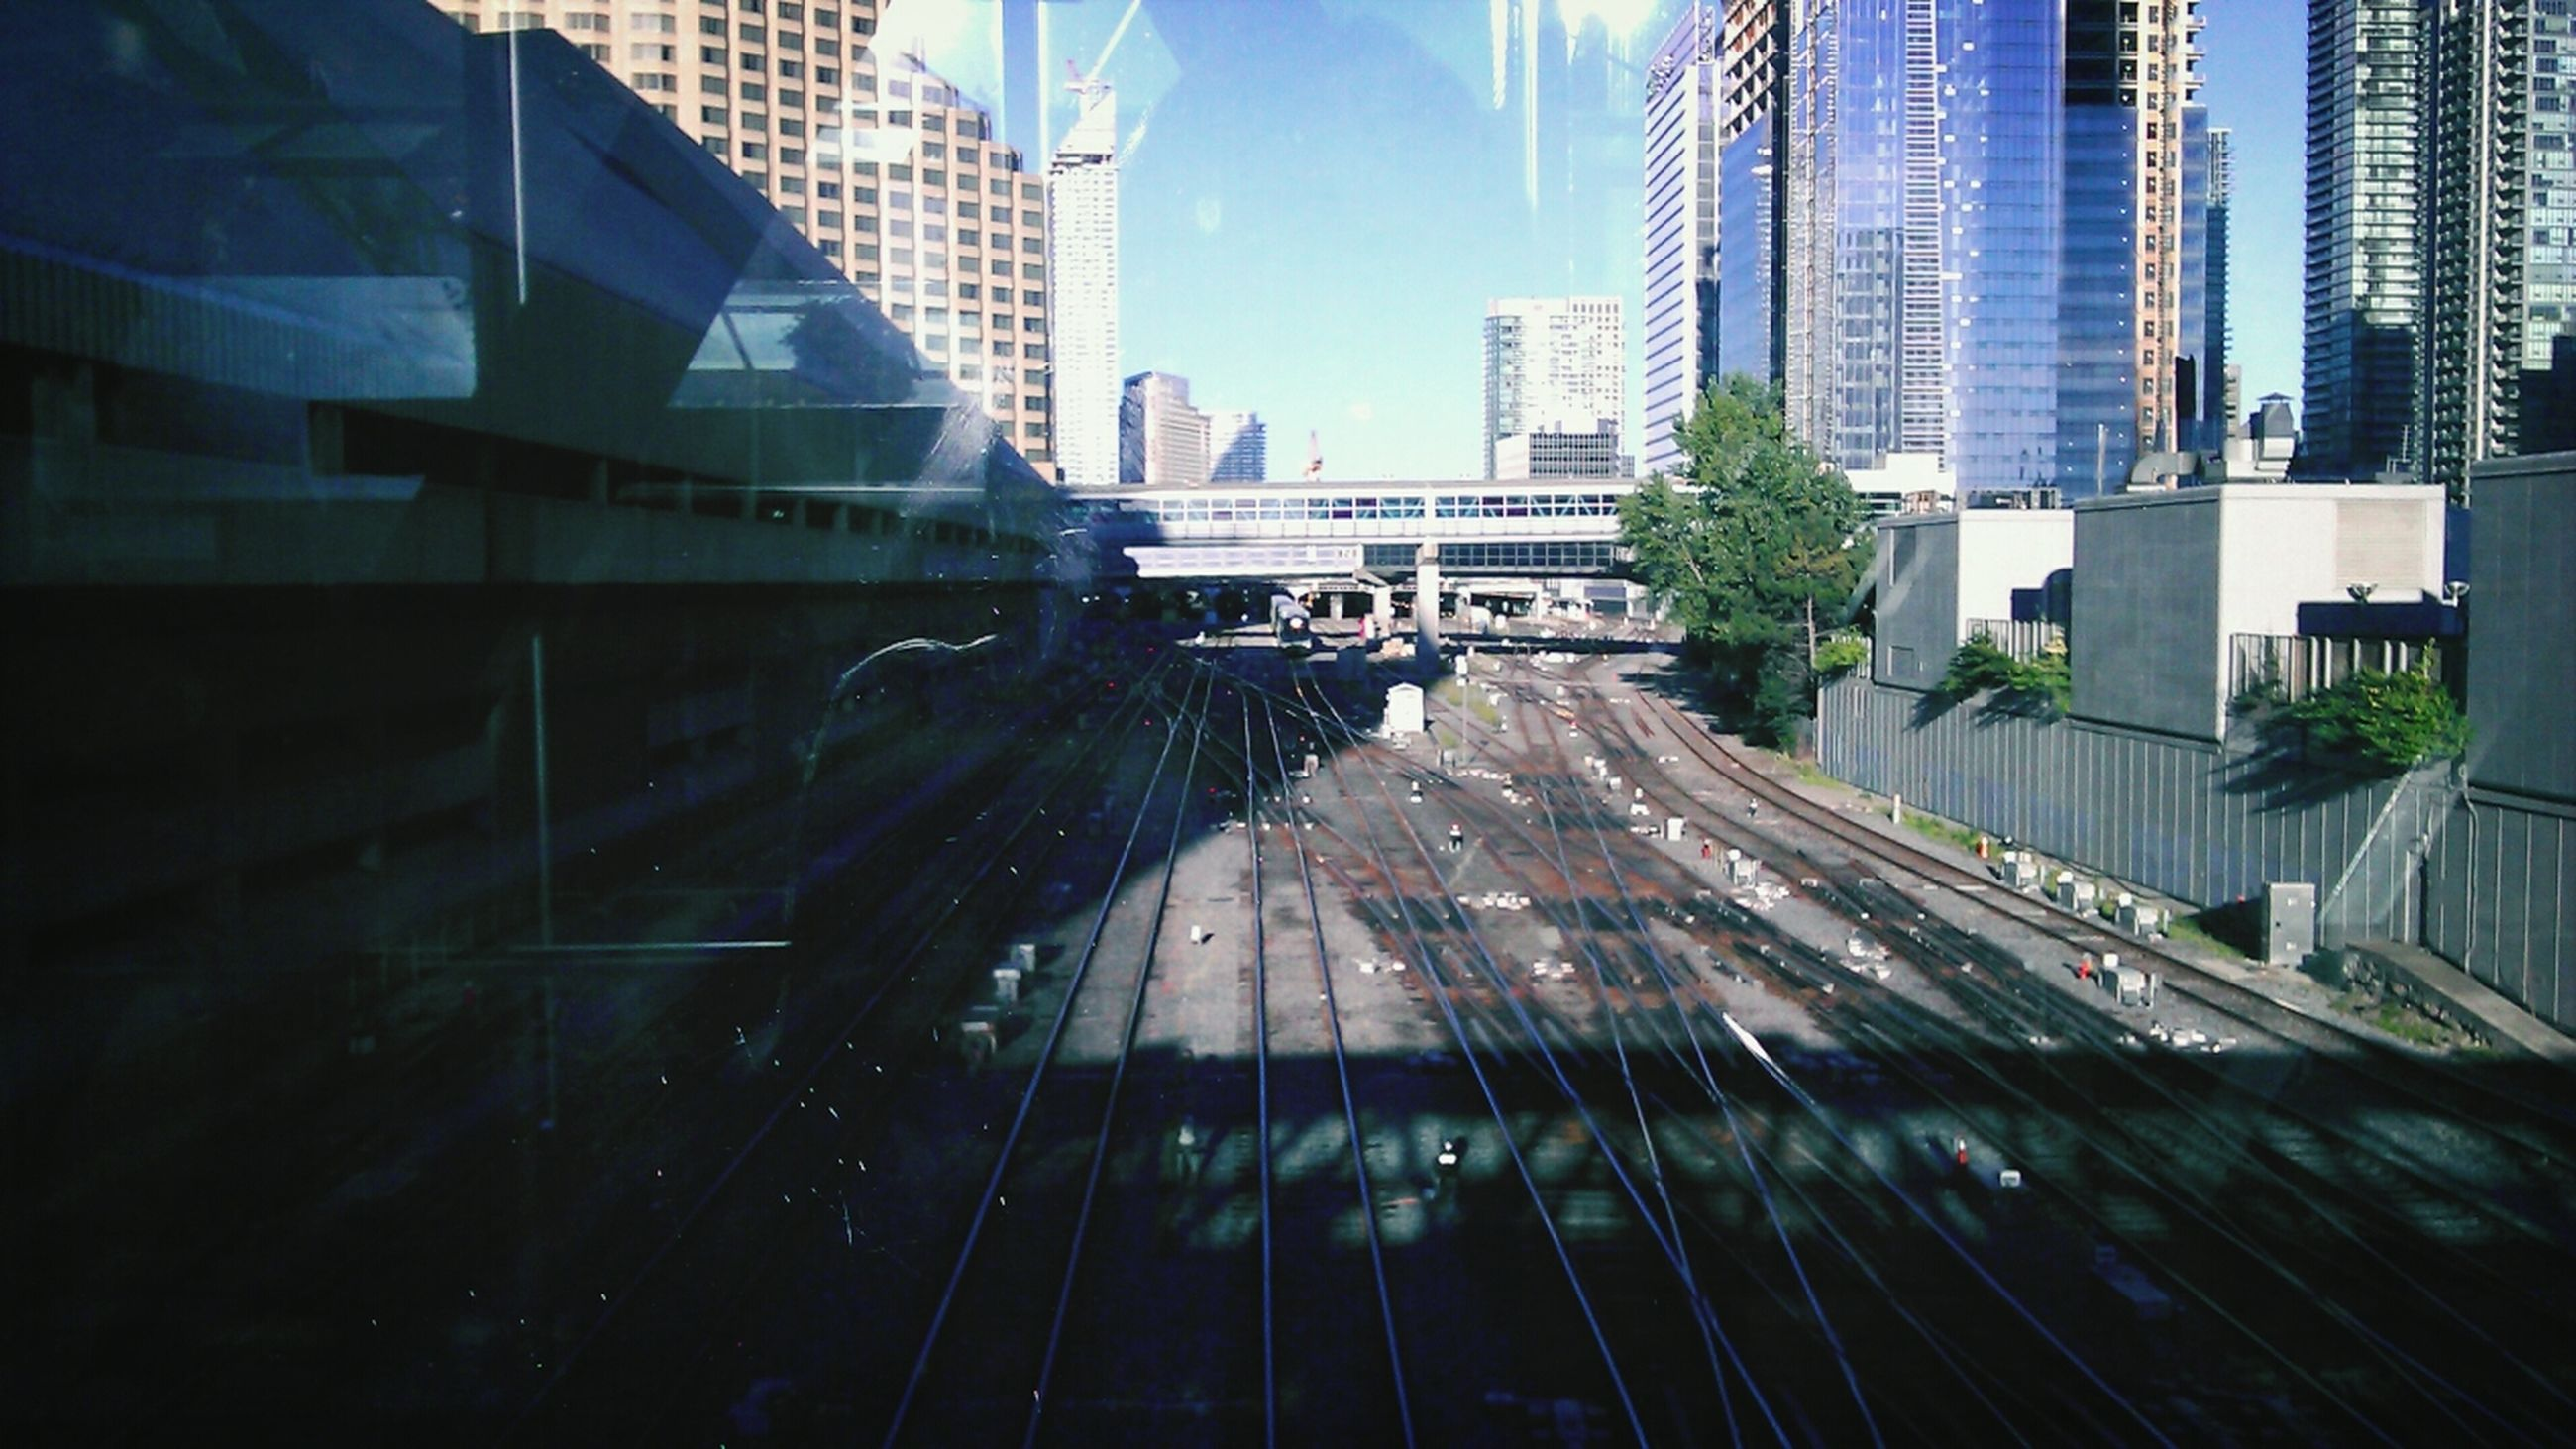 built structure, architecture, building exterior, transportation, railroad track, building, city, reflection, low angle view, men, day, outdoors, sky, glass - material, construction site, sunlight, modern